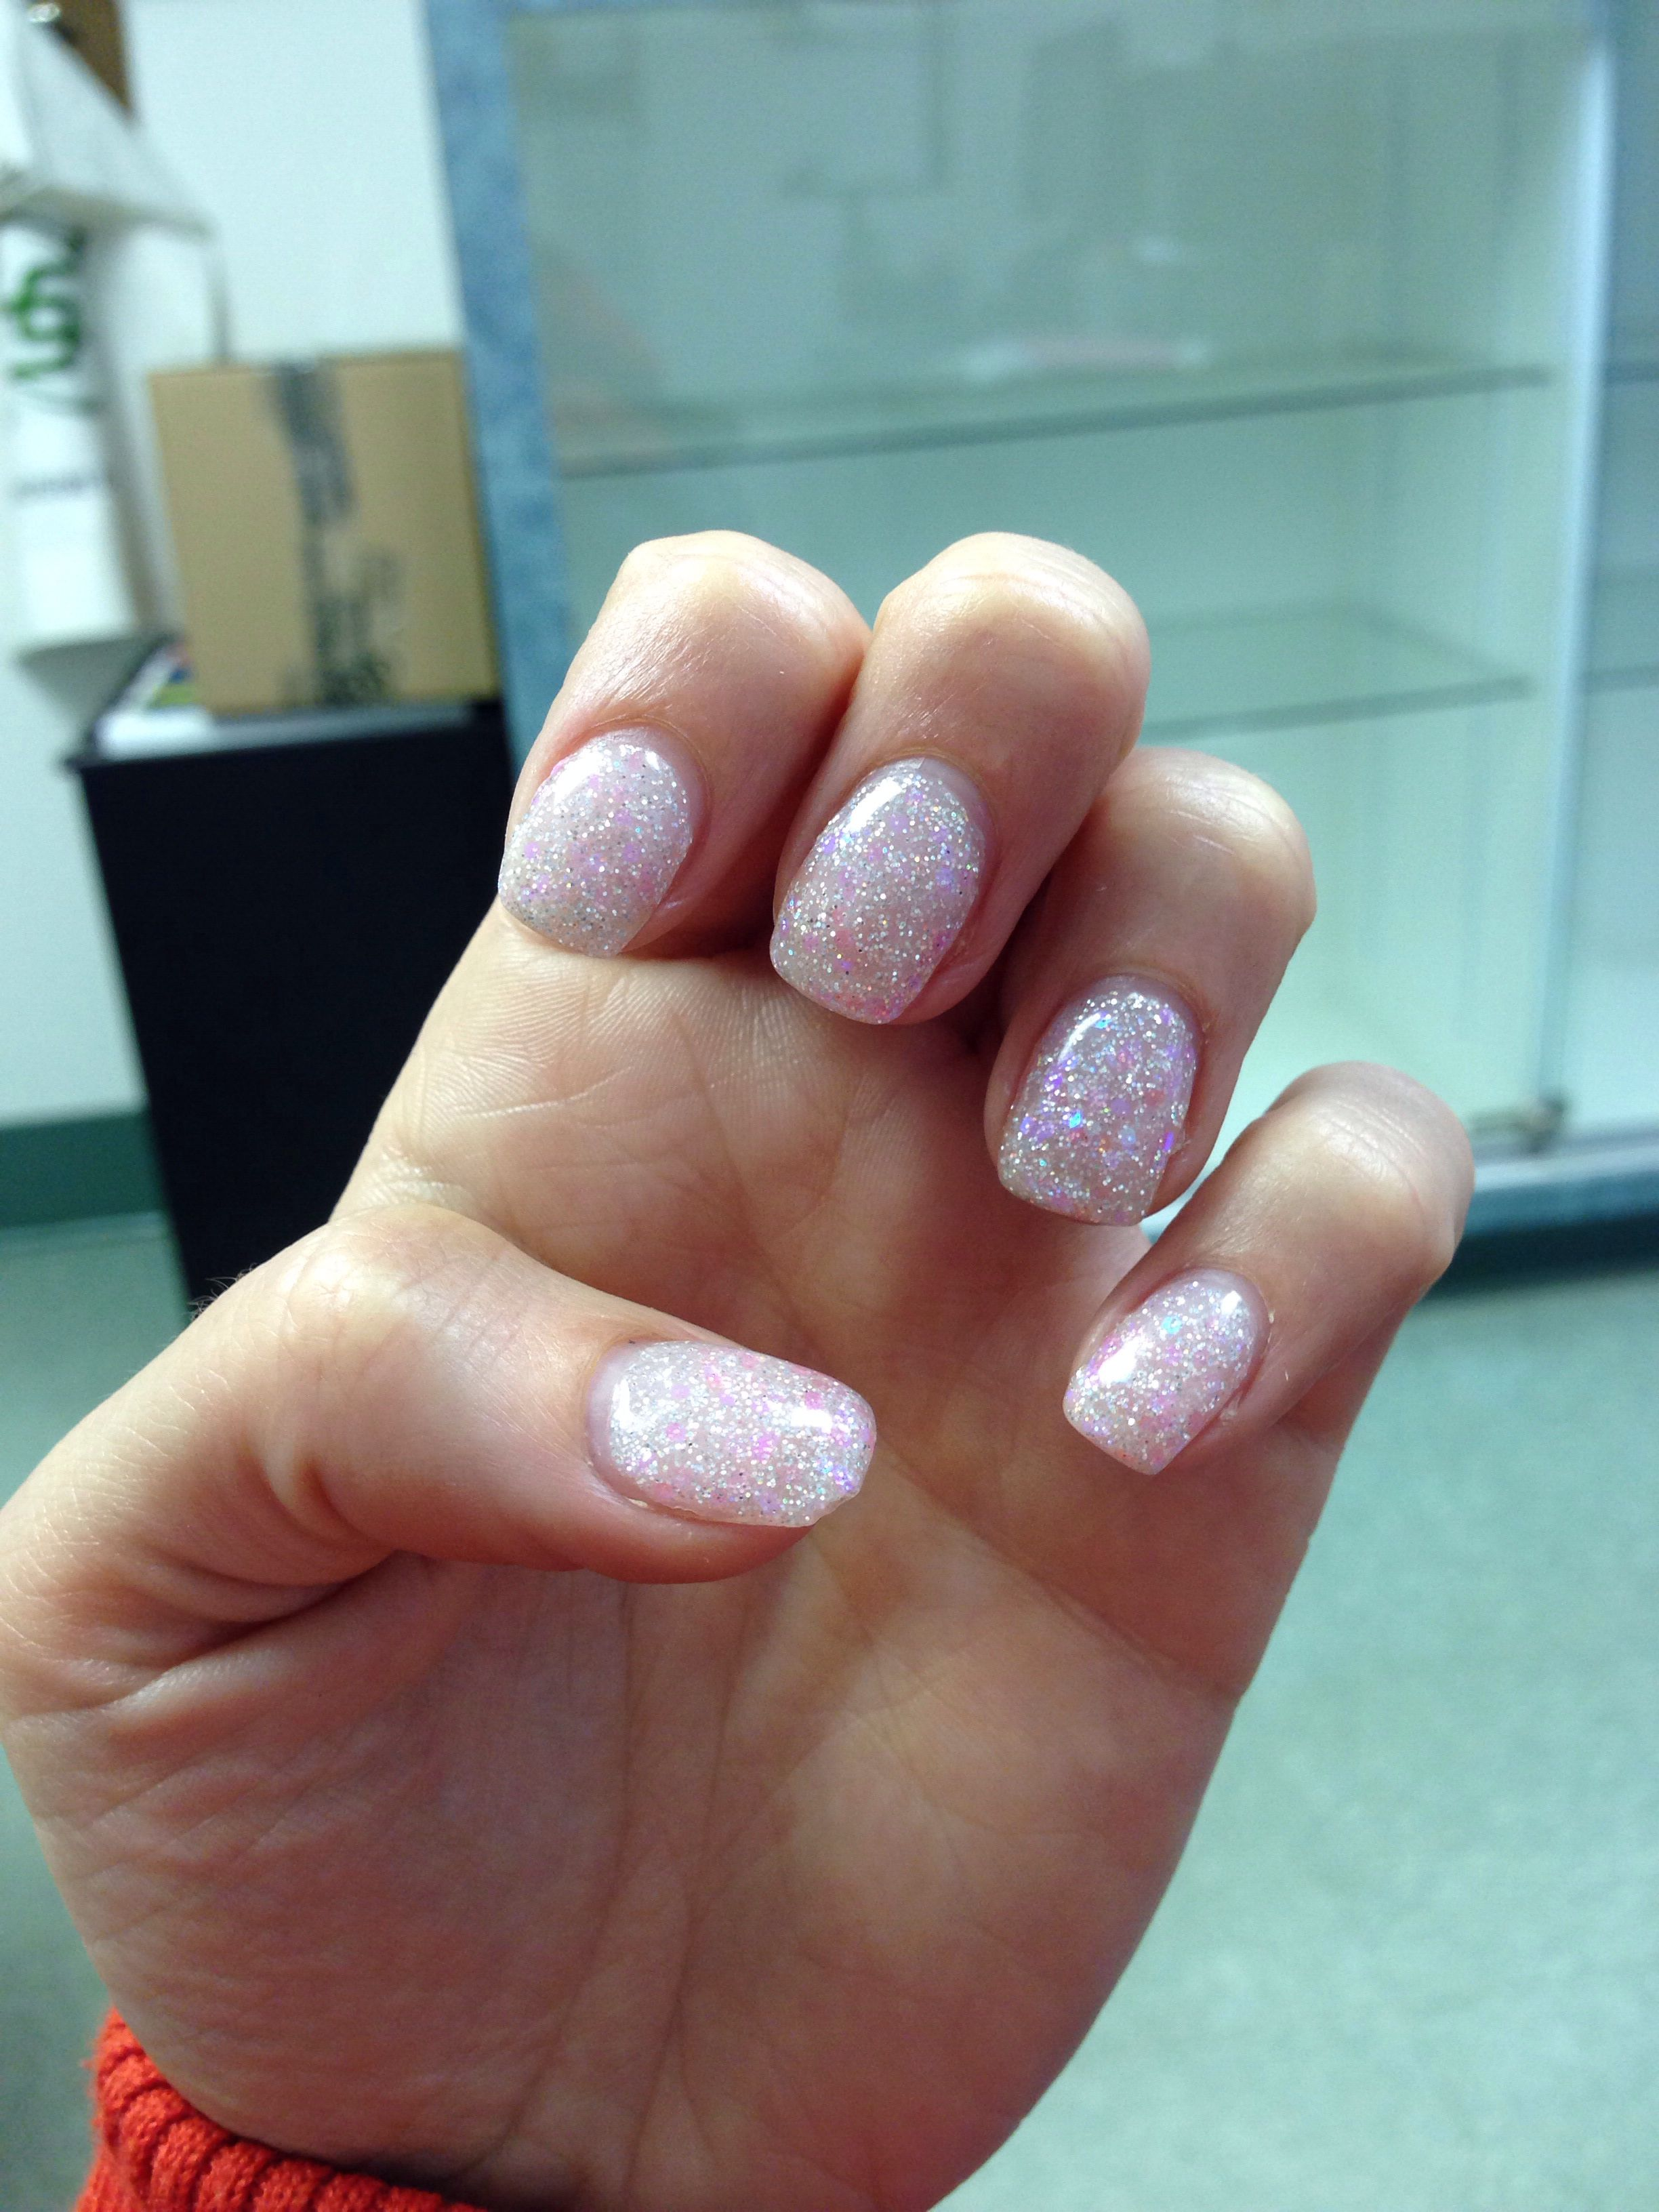 Gel nails March 31, 2014. And they glow in the dark!! | Nails ...